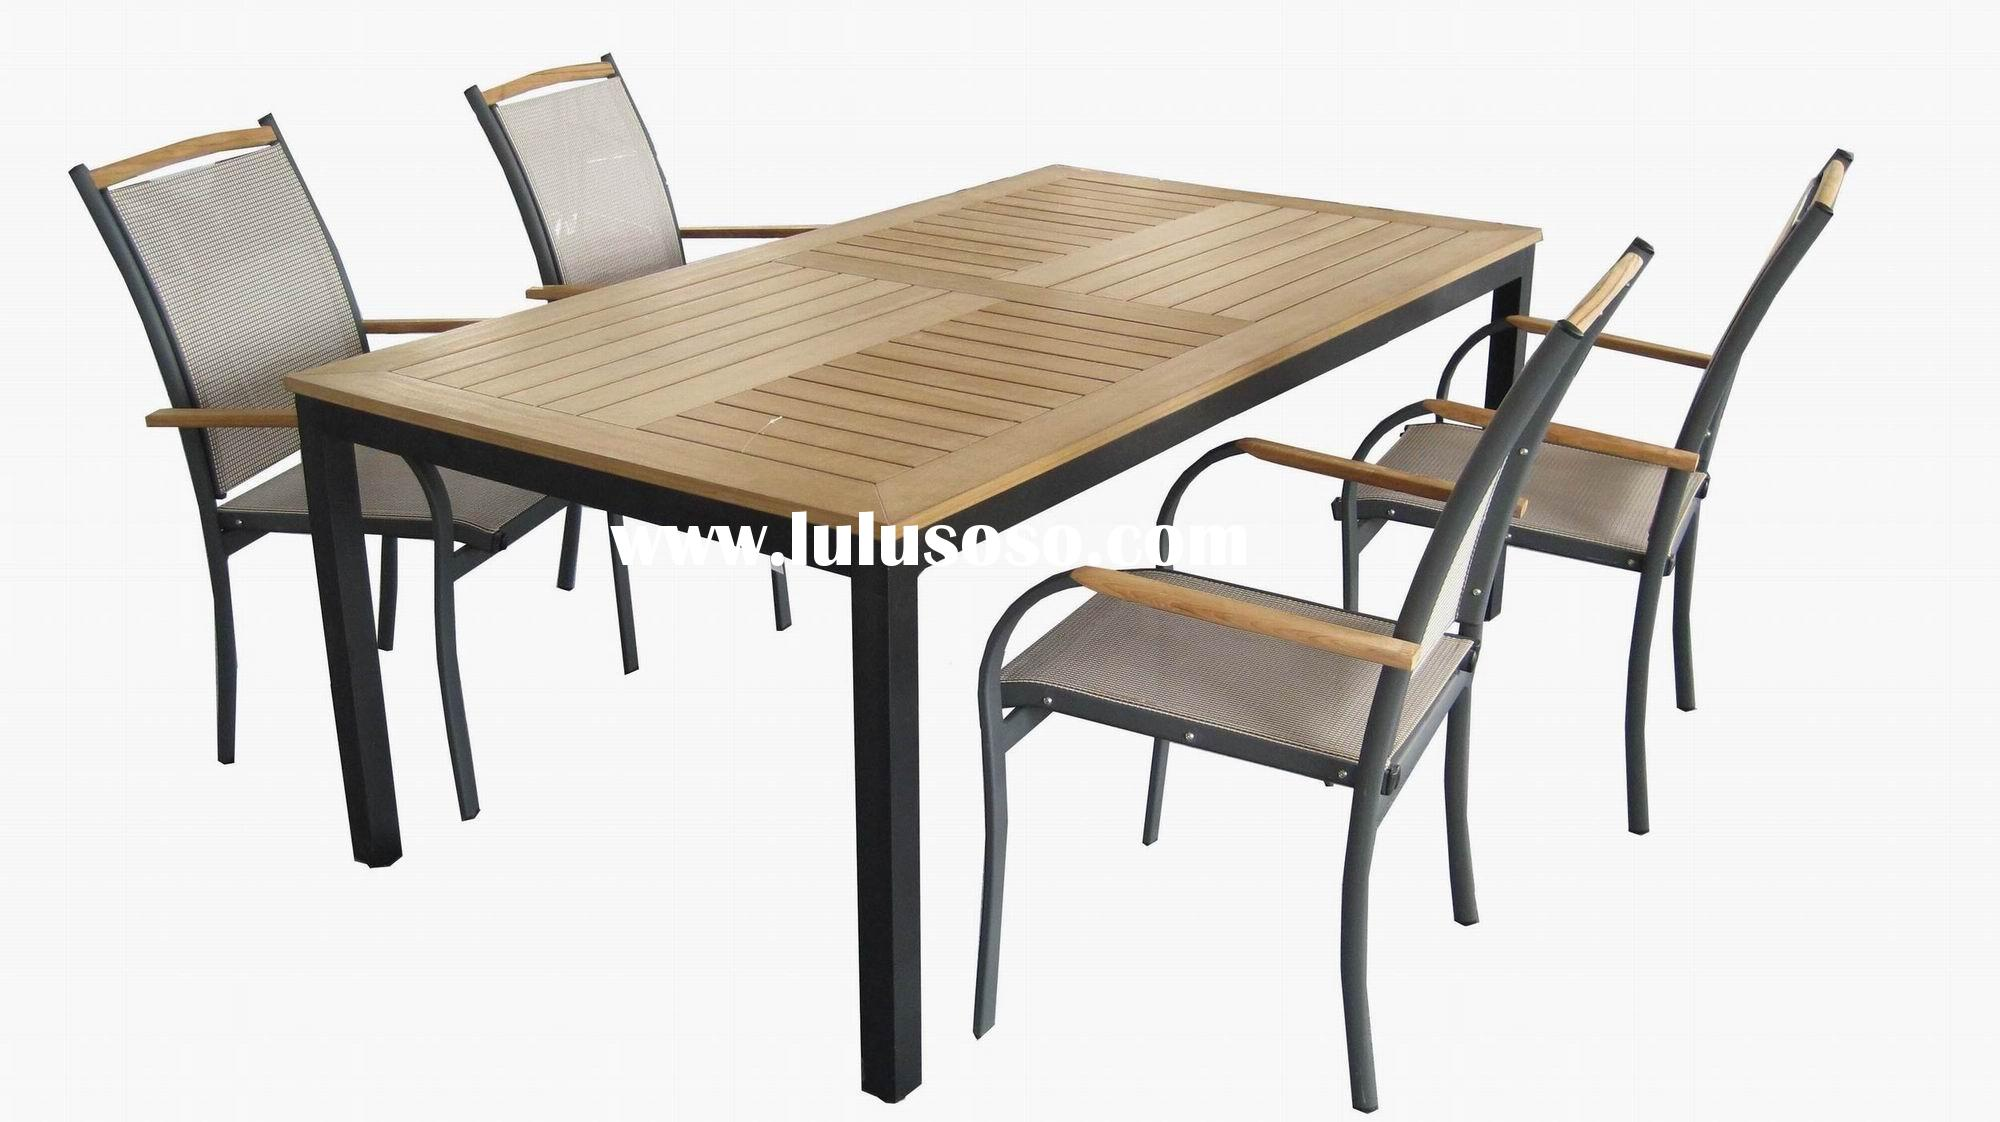 Solid Wood top Aluminum table and chair outdoor furniture